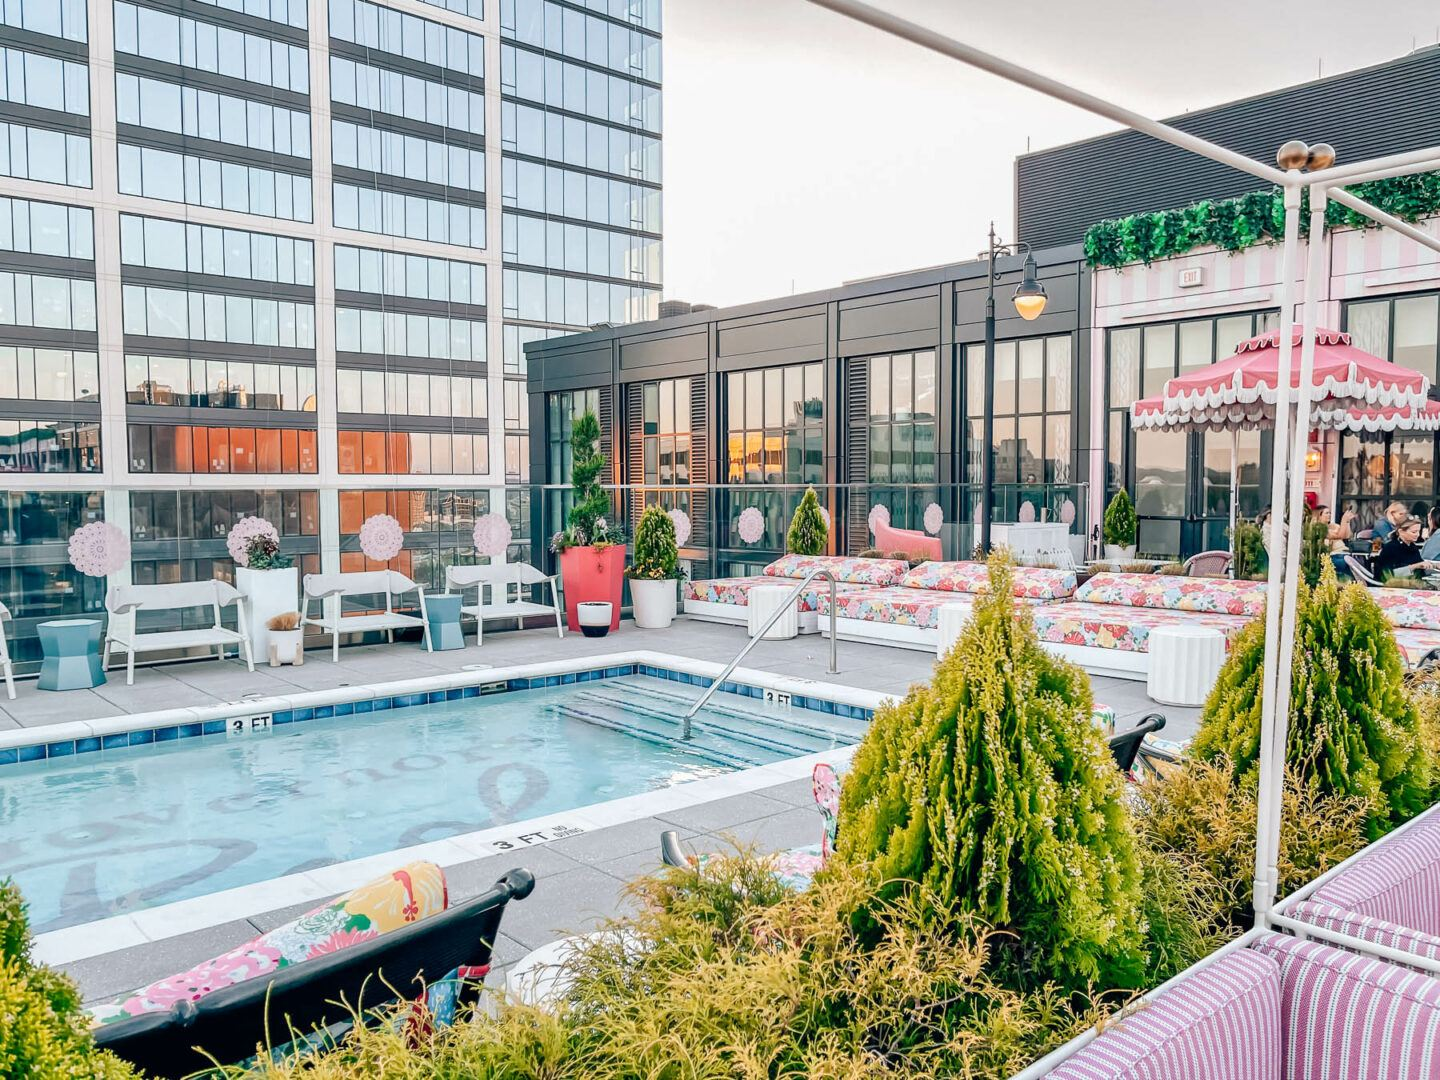 Best Places to Stay in Nashville, by Travel Blogger What The Fab